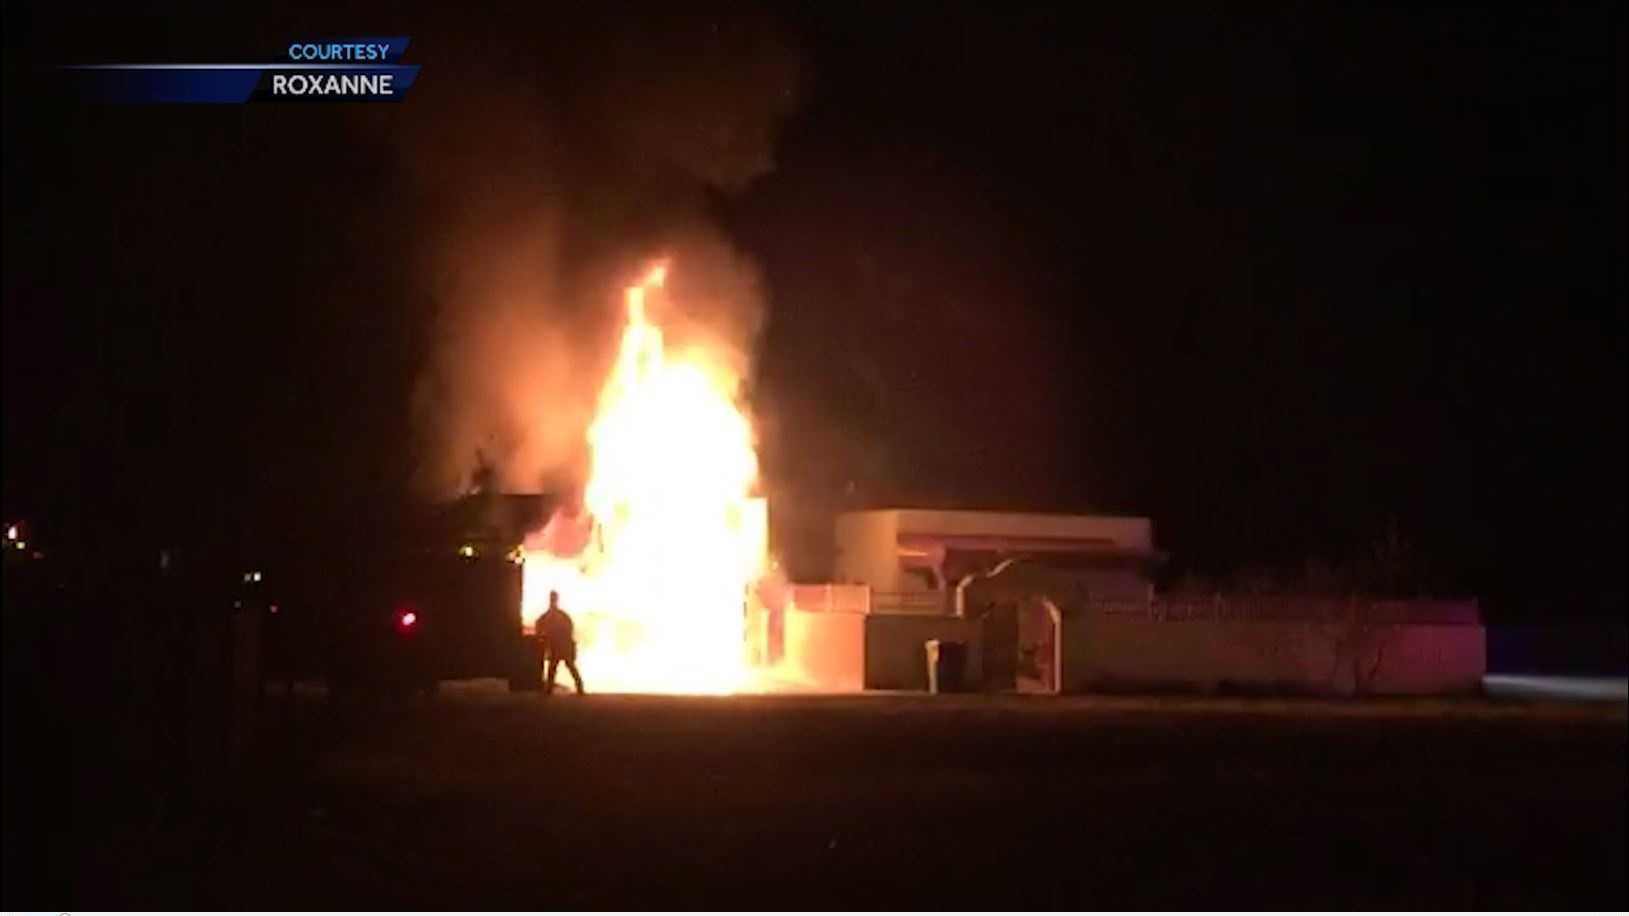 In overnight news...crews battled a fire in southwest albuquerque.